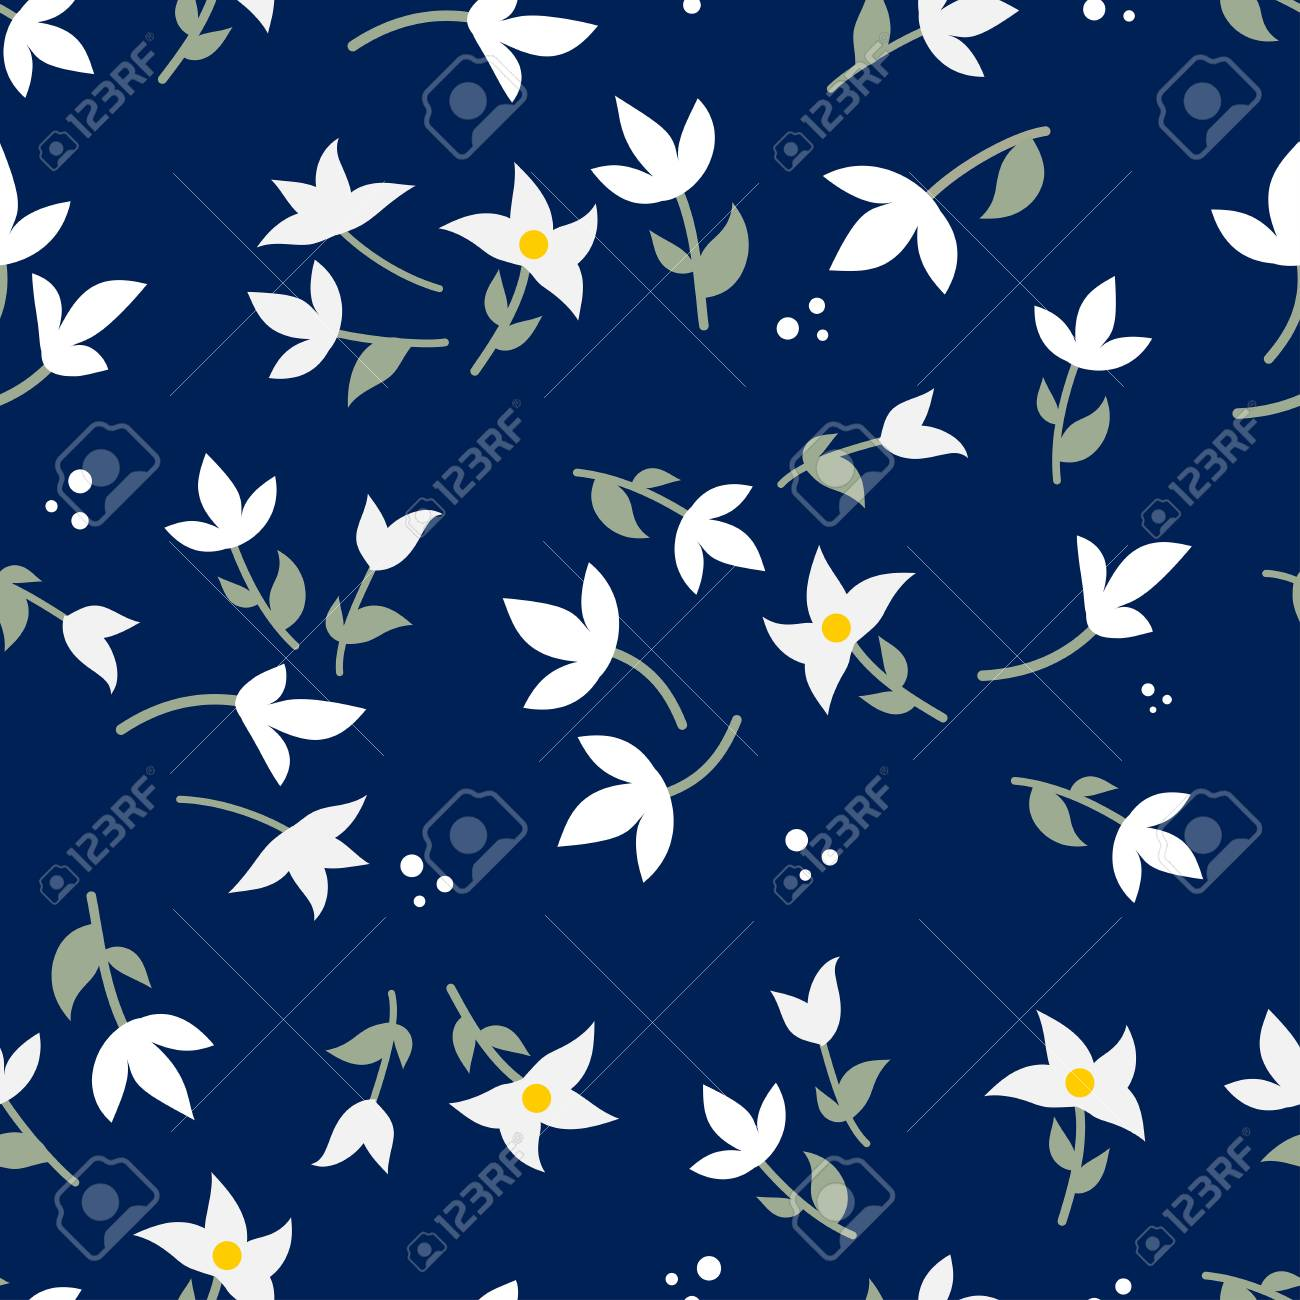 Beautiful floral seamless pattern vector - 124749914